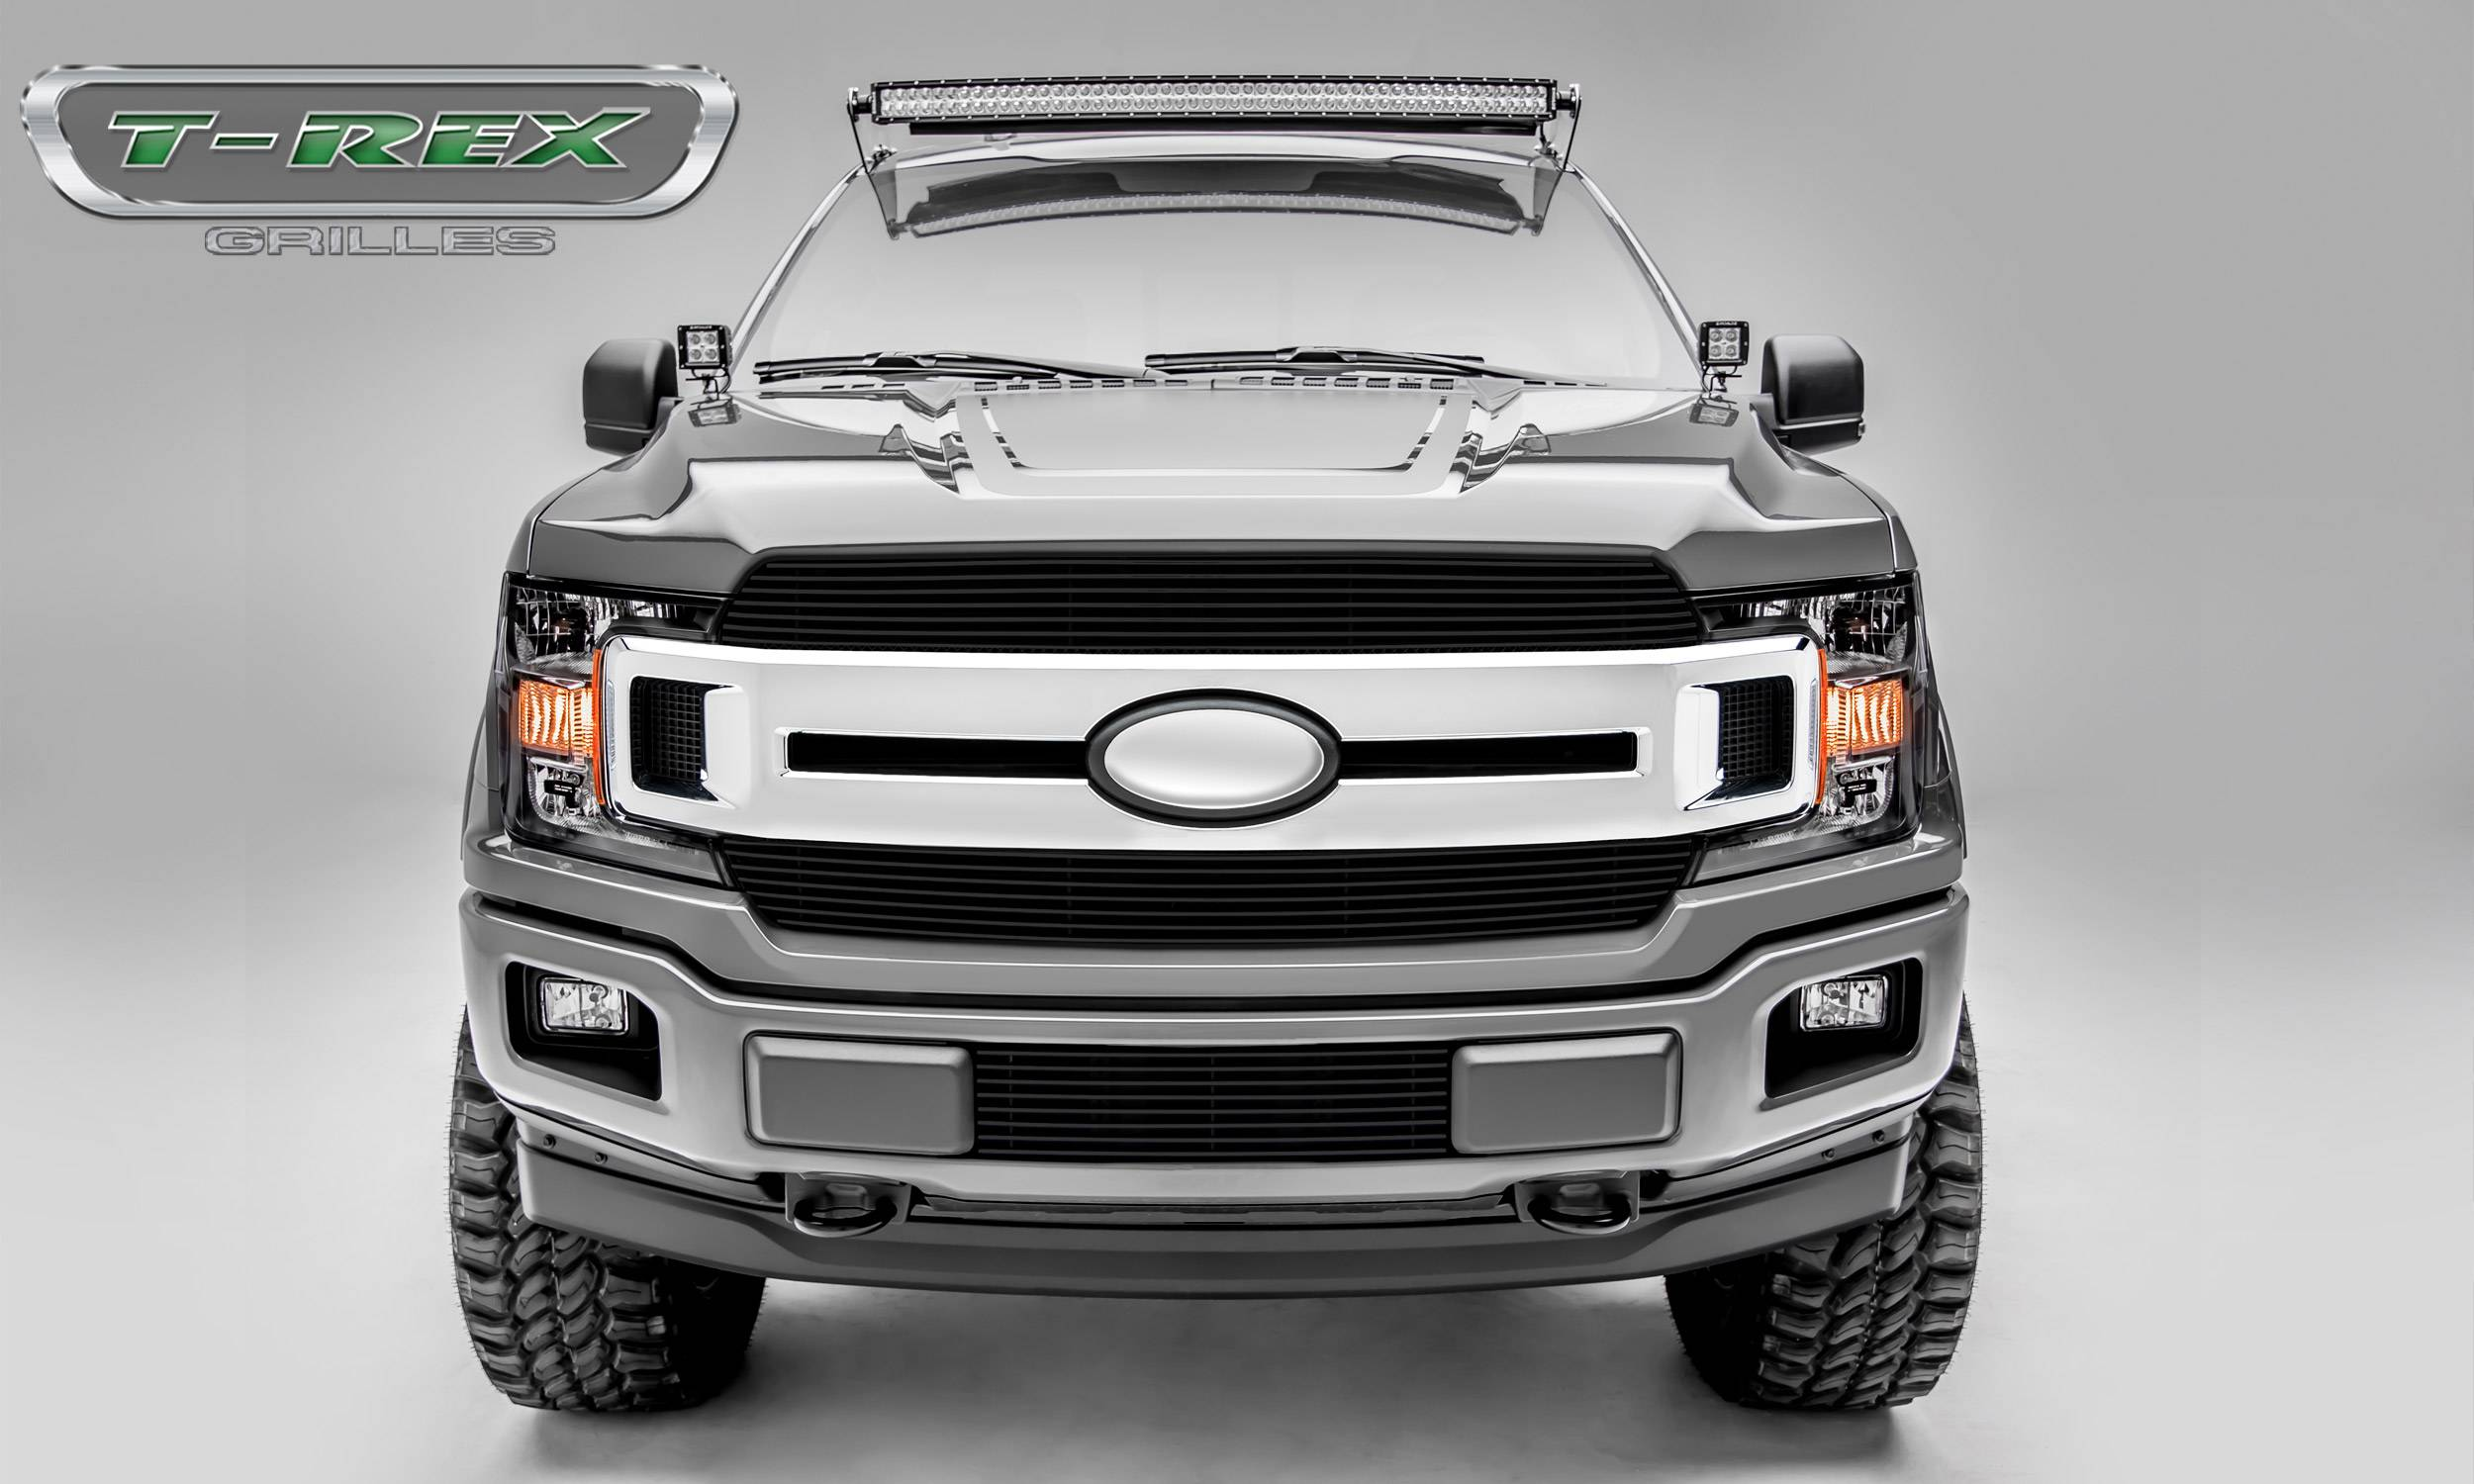 T-REX Grilles - T-REX Ford F-150 - Billet Series - 2 PC Main Grille Overlay / Insert with Black Powdercoat Aluminum Finish - Pt # 20571B